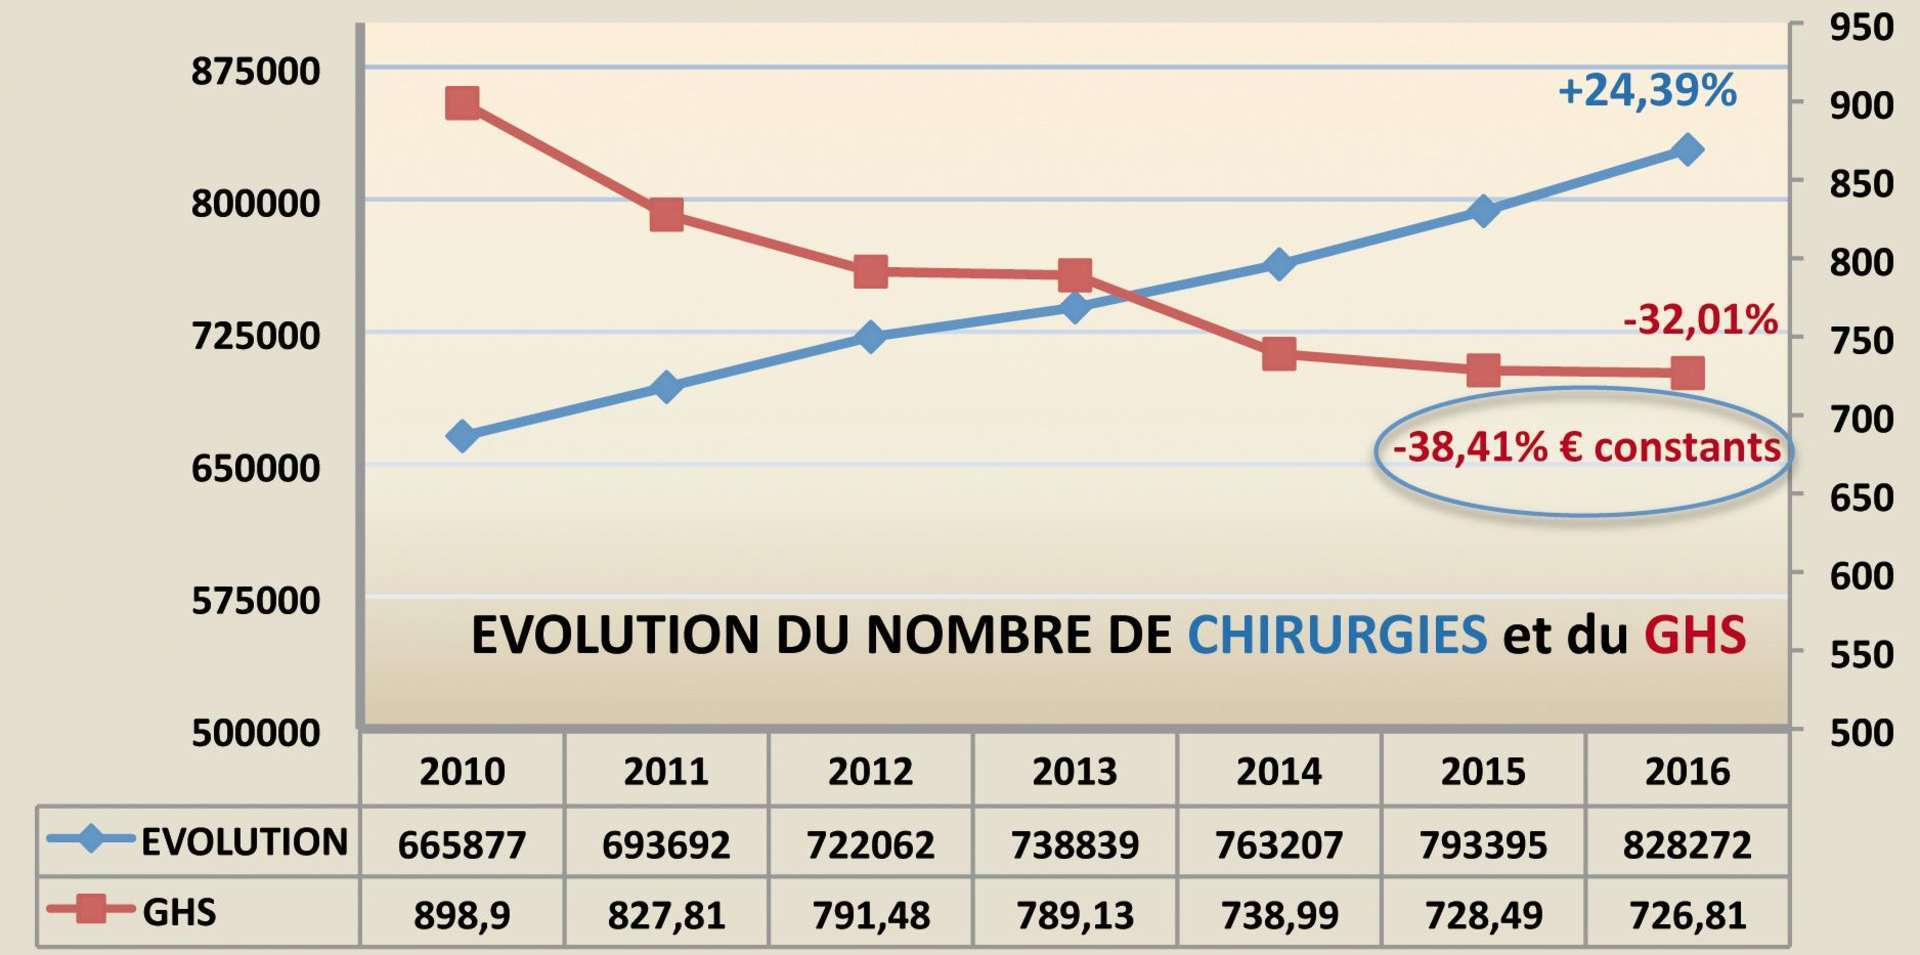 Figure 1. Evolution du nombre de chirurgies et du GHS.